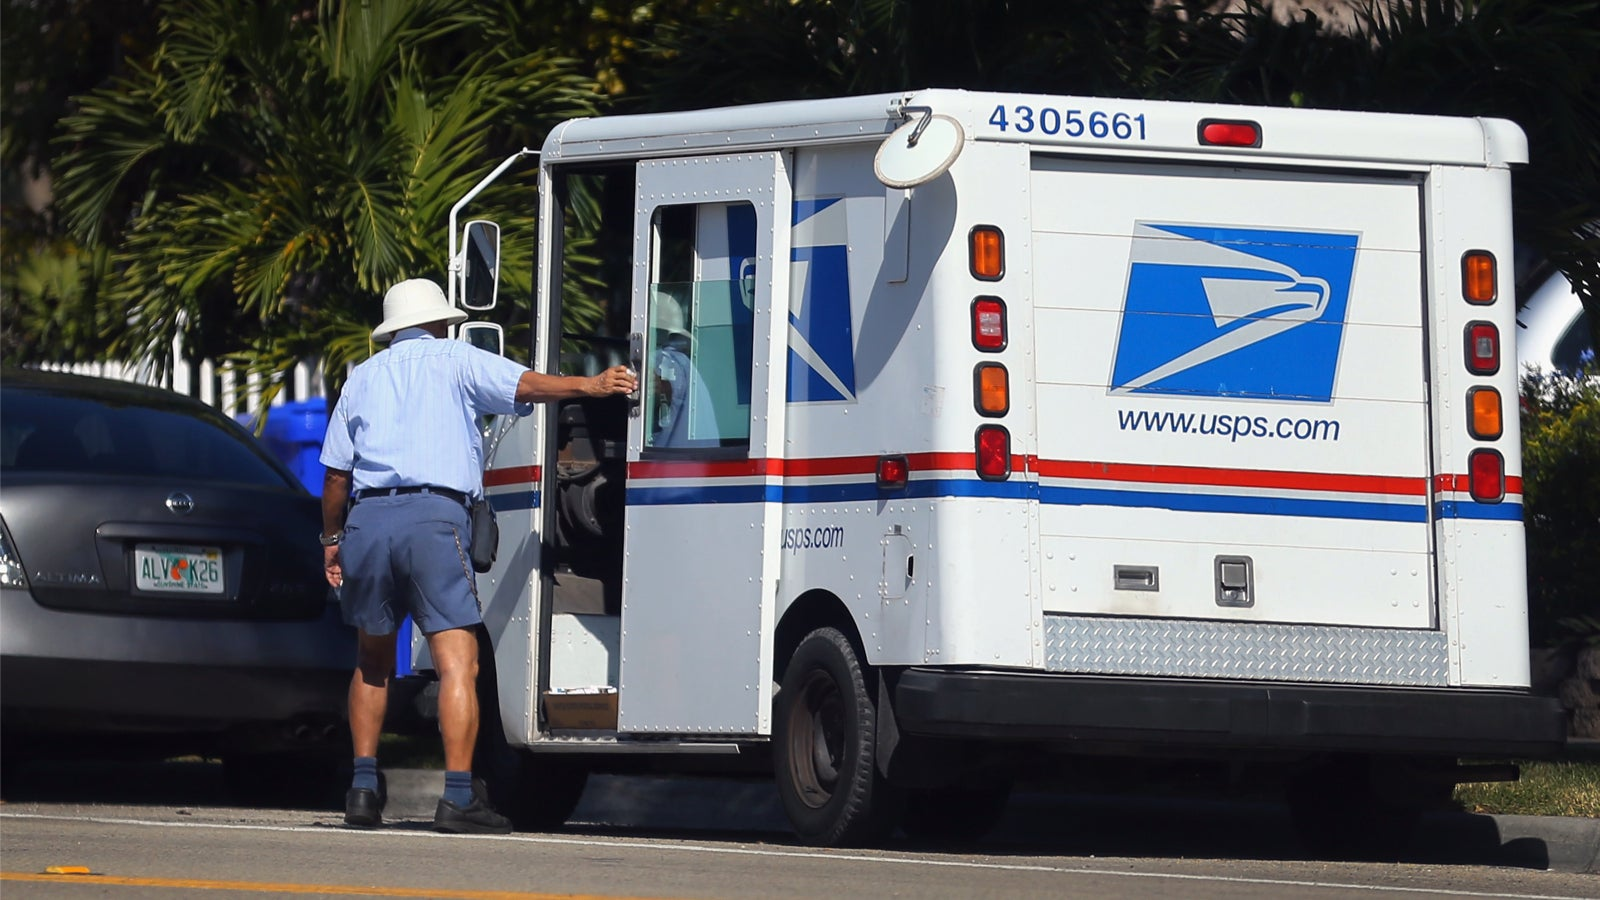 U.S. Postal Service: We Don't Have To Obey Traffic Laws!